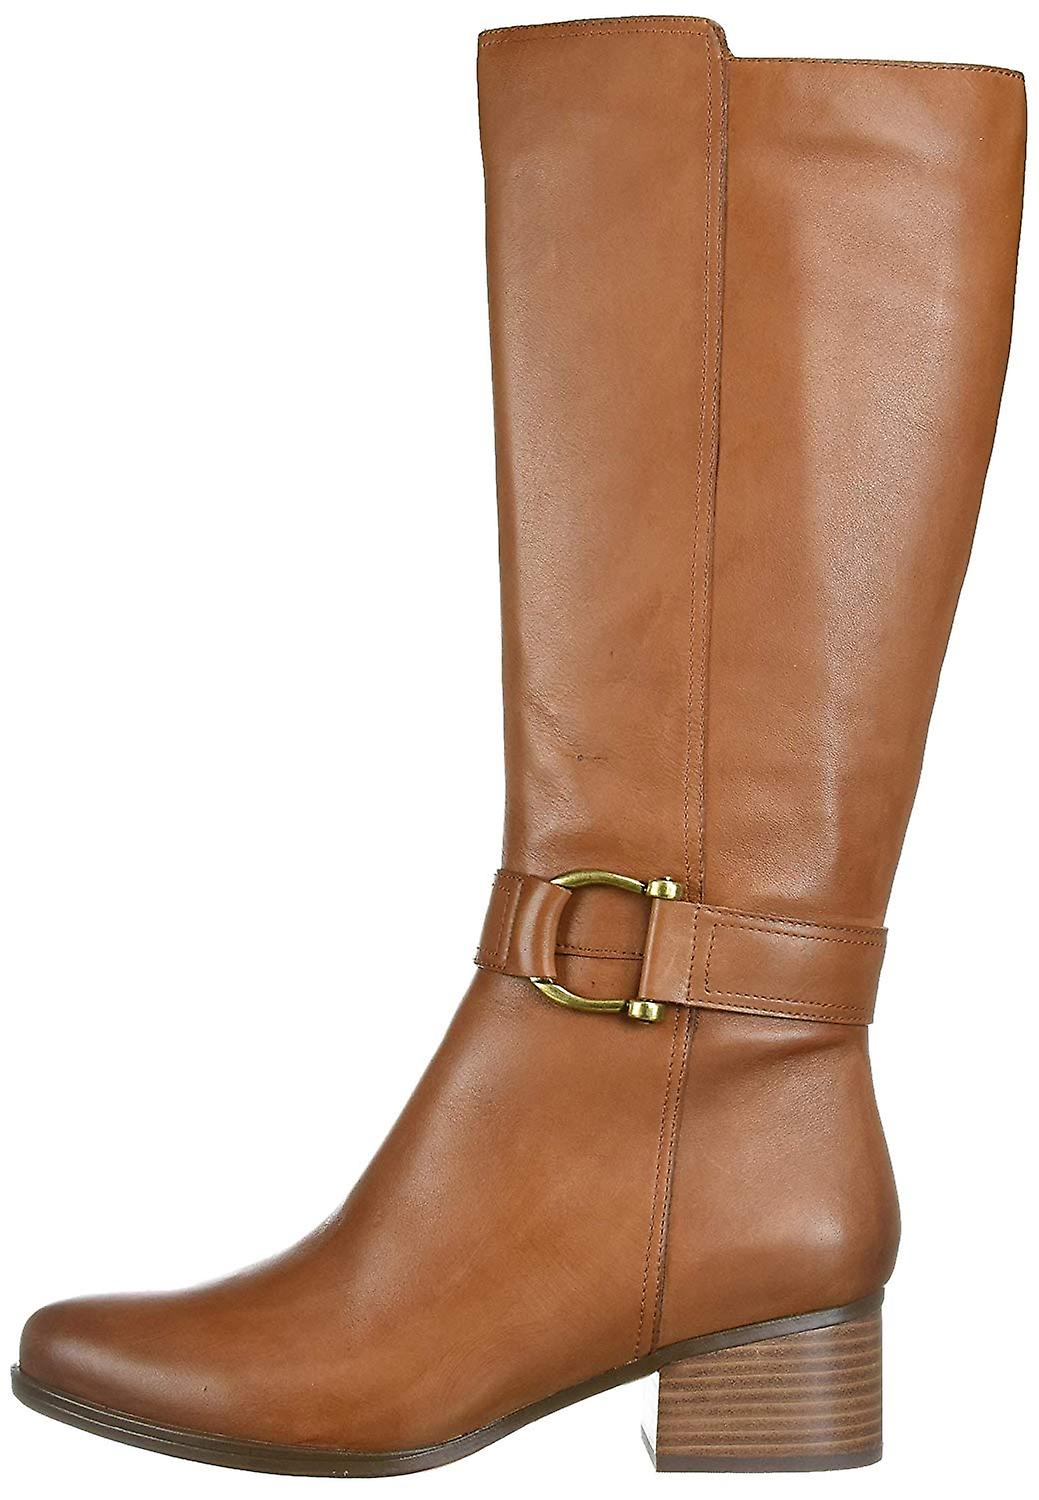 Naturalizer Womens Daelynn Leather Almond Toe Knee High Fashion Boots O2PZS